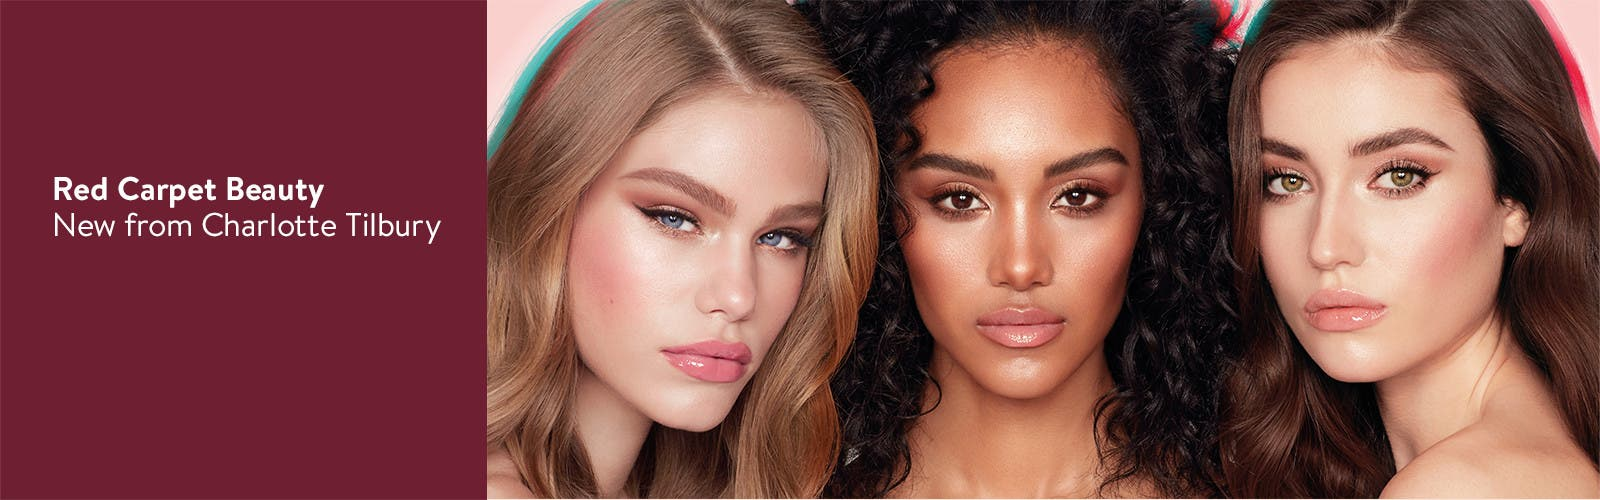 Red carpet beauty essentials from celebrity makeup artist Charlotte Tilbury.